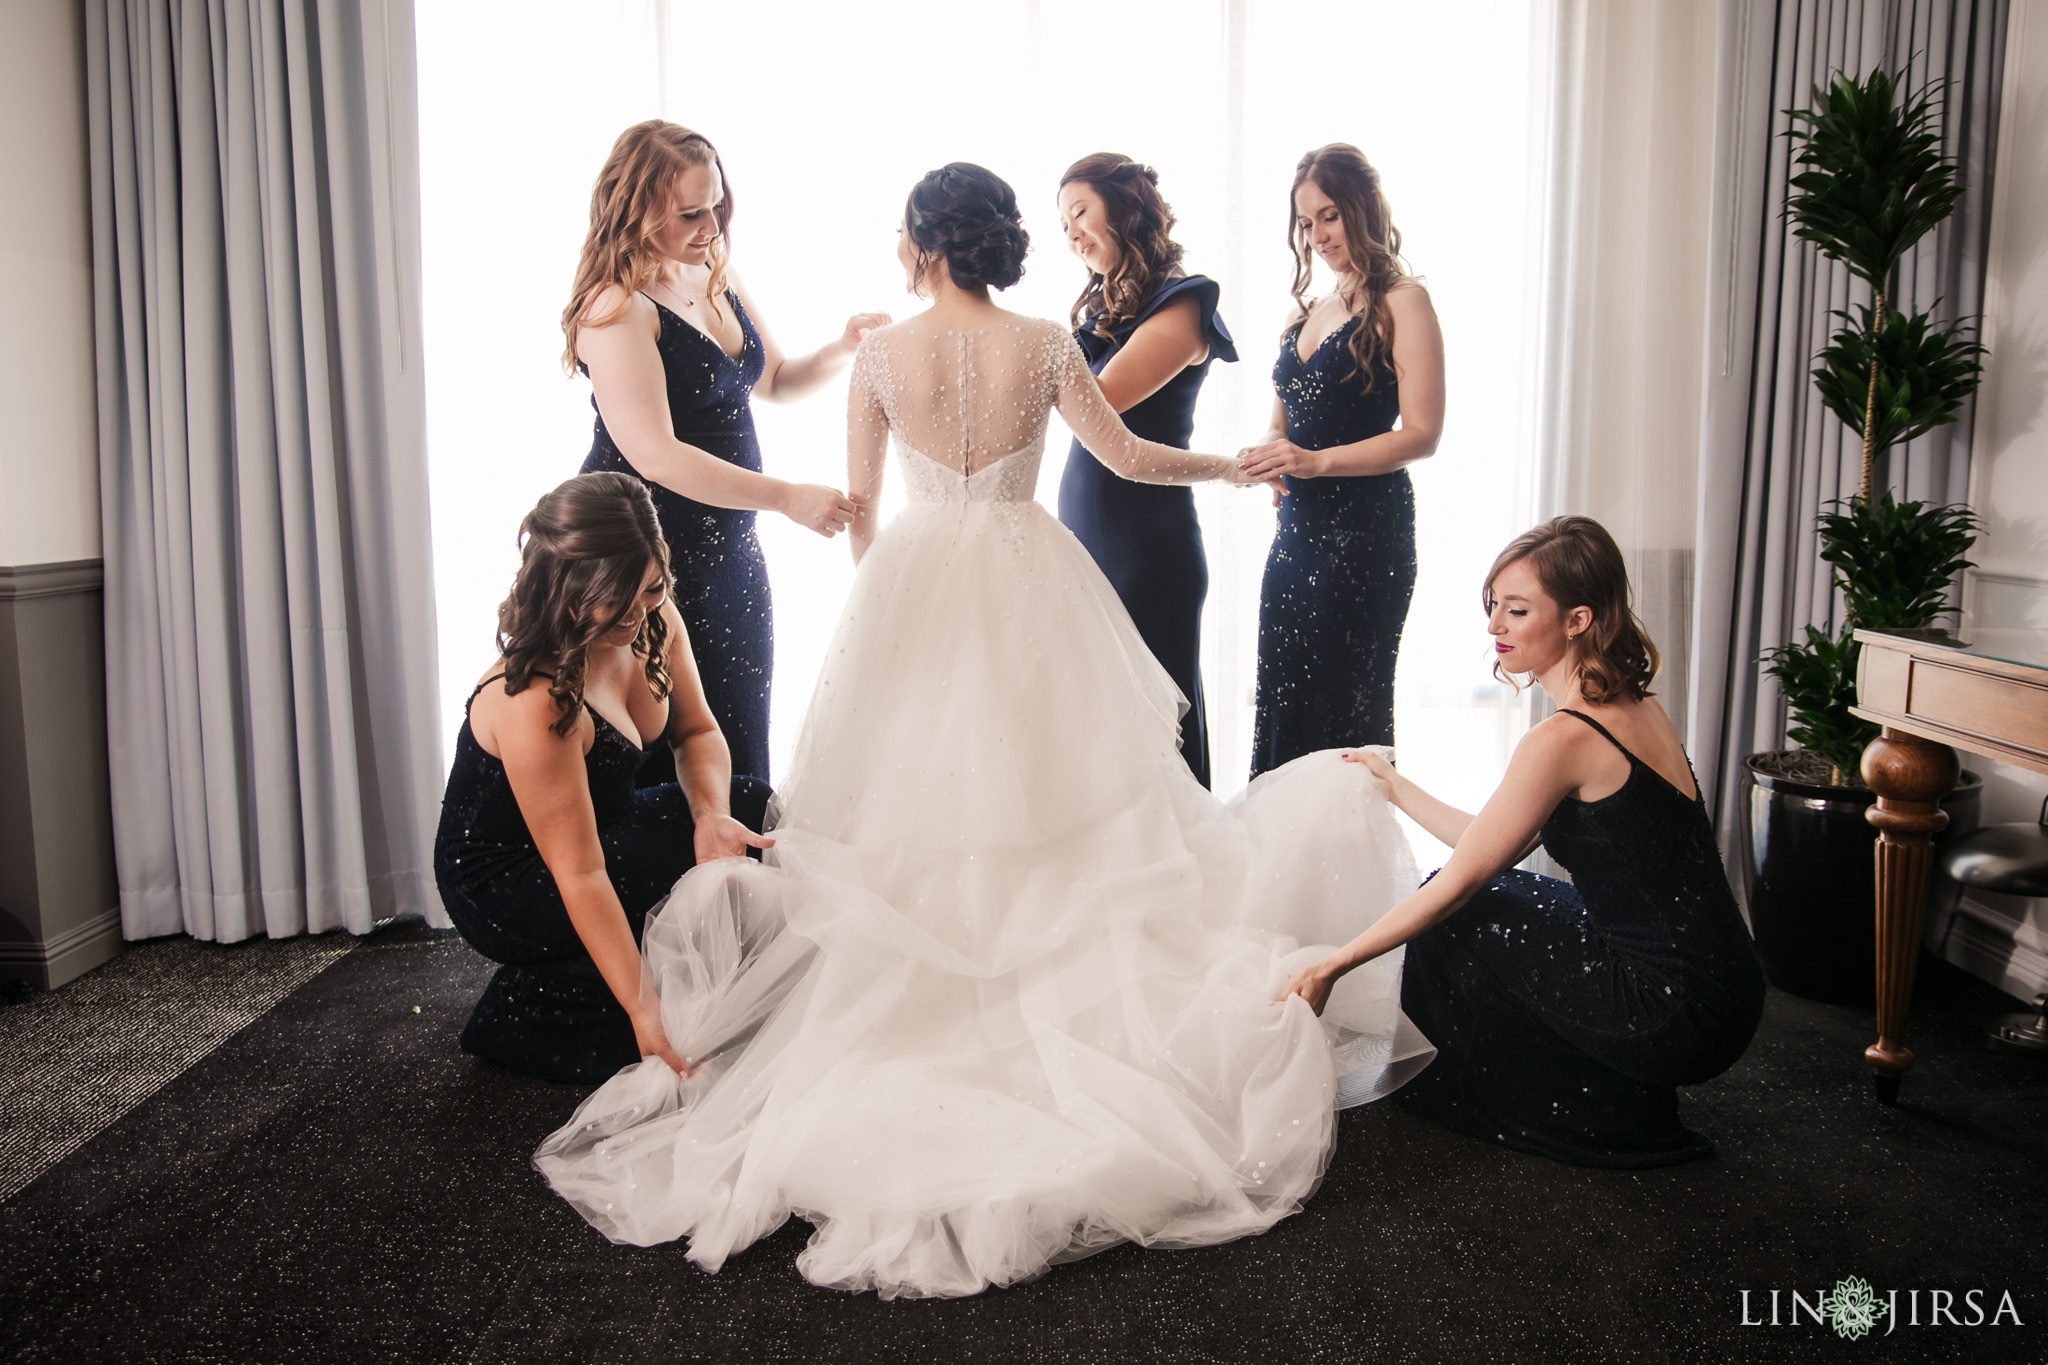 005 museum of art san diego bridesmaids wedding photography